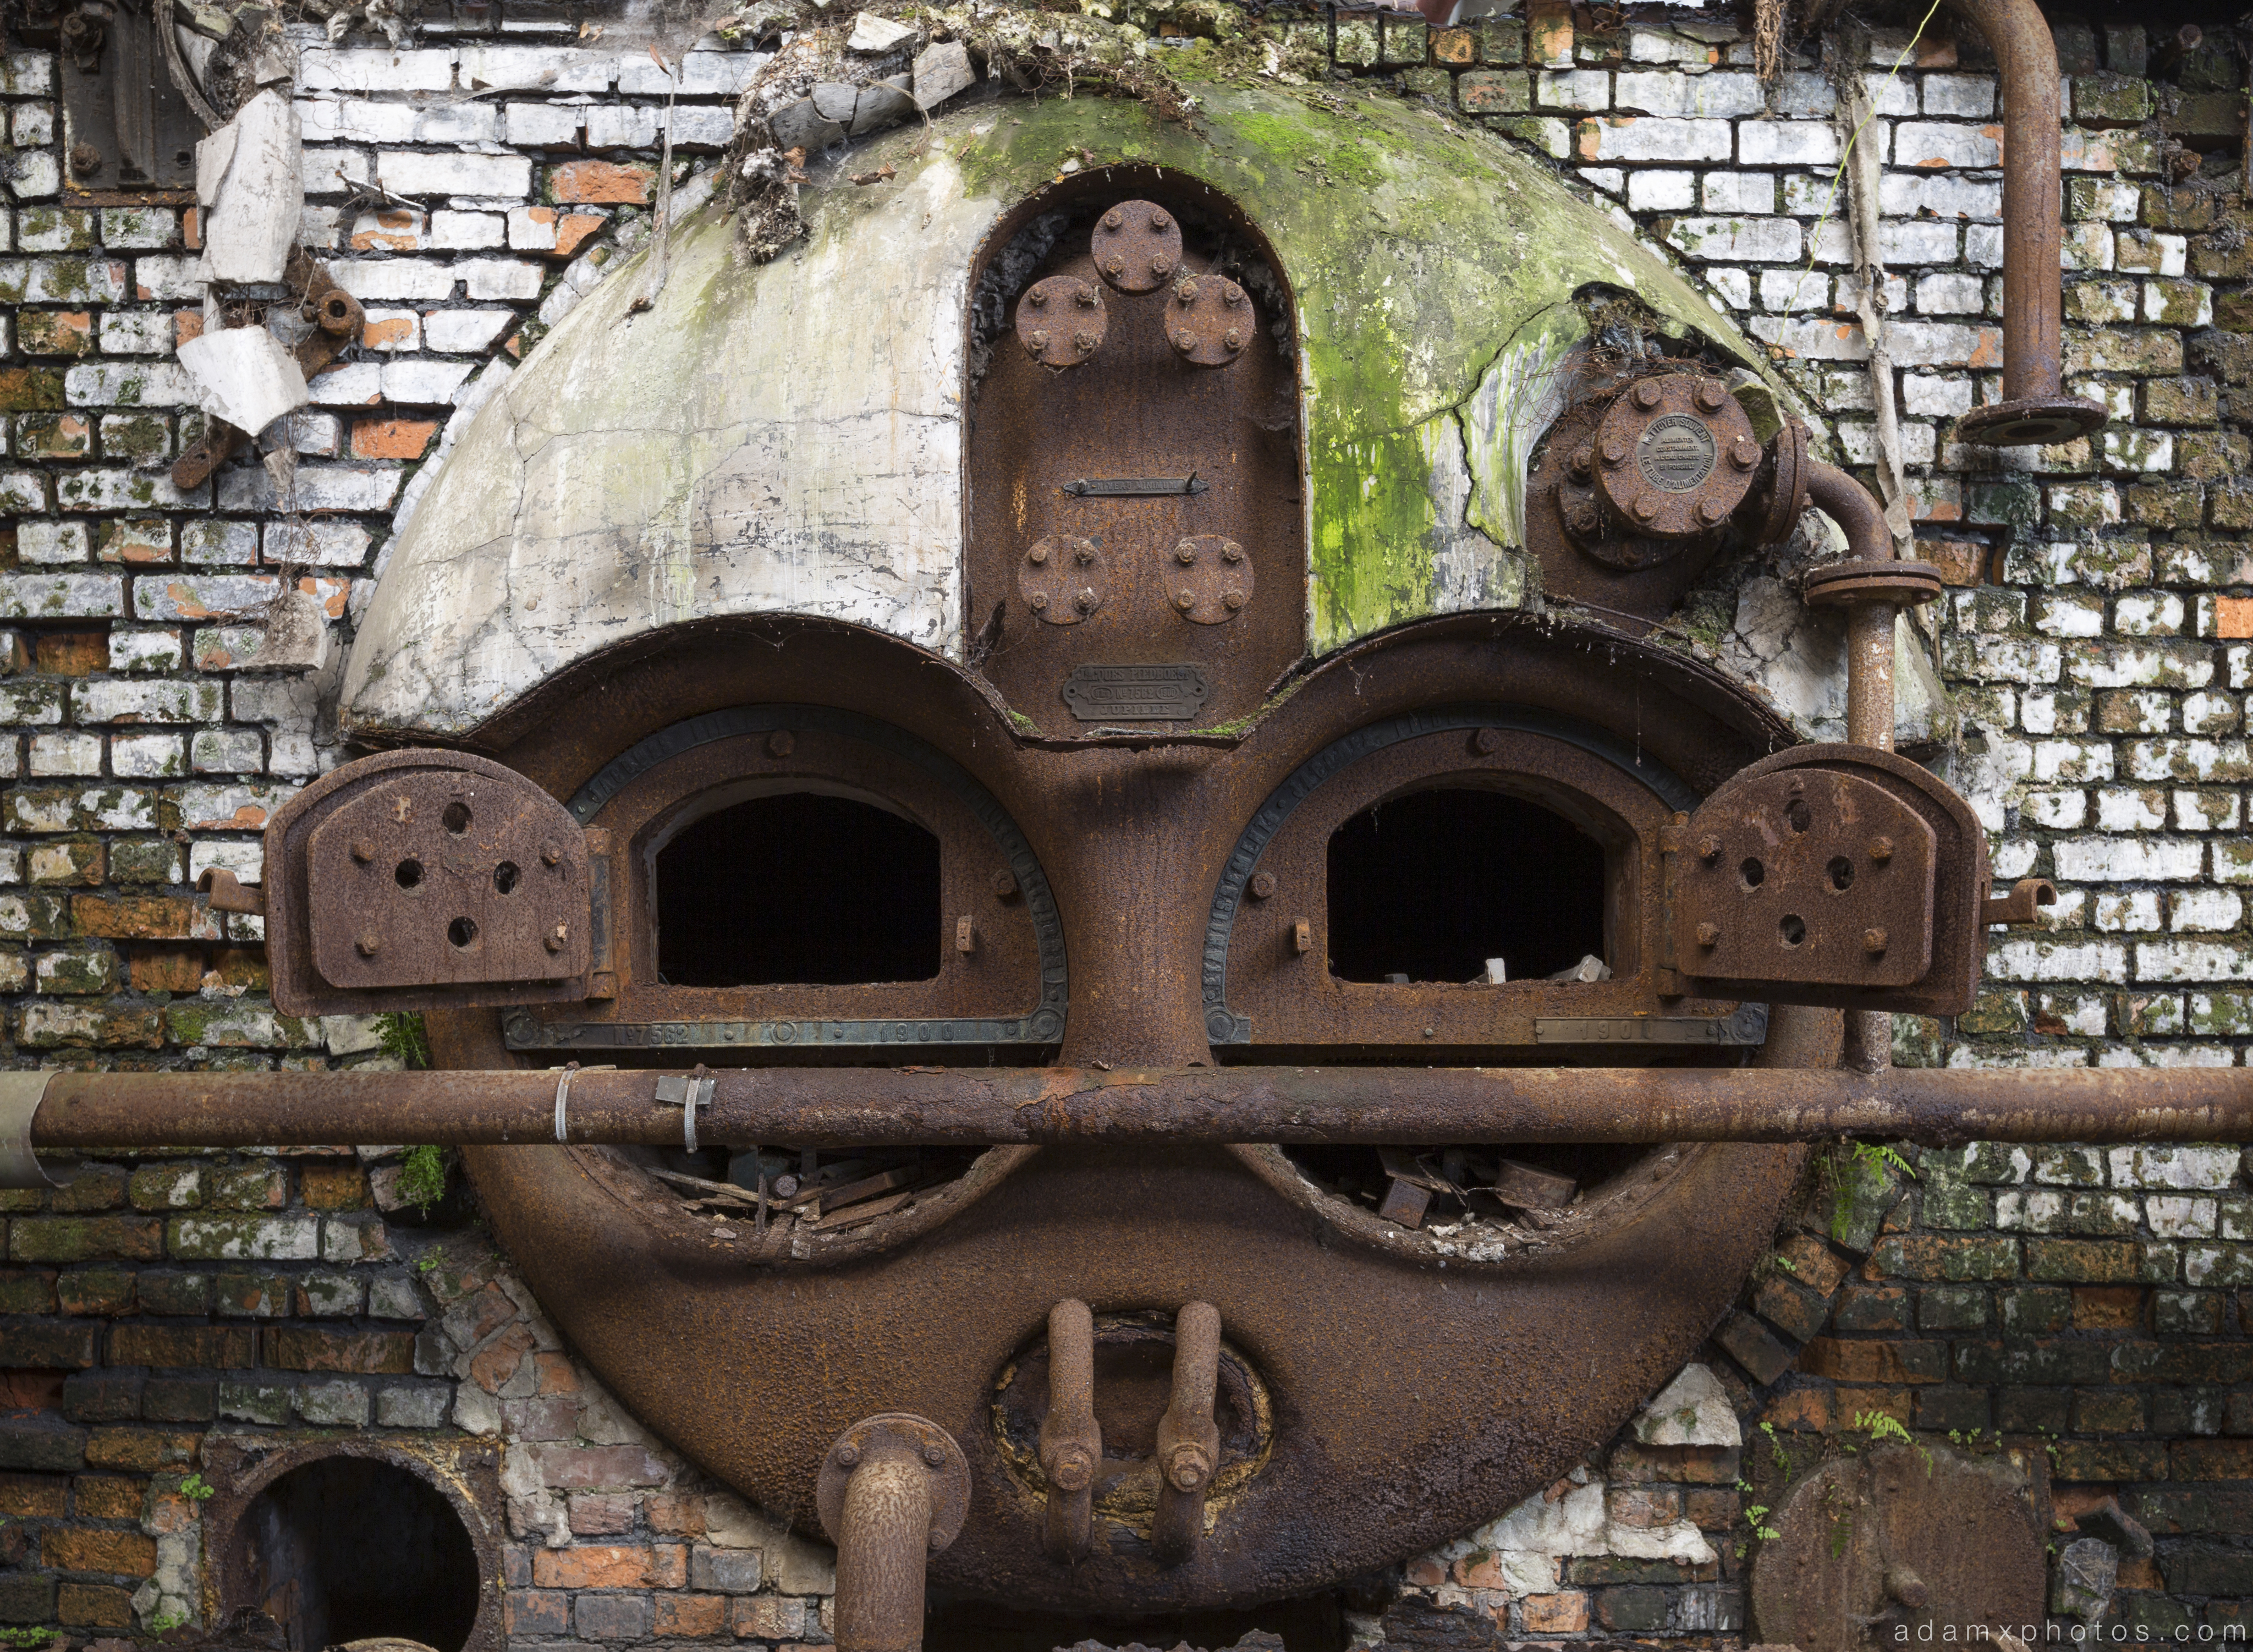 Urbex Faces Face metal oven furnace overgrown Usine S Belgium Textile Wool Factory Urbex Adam X